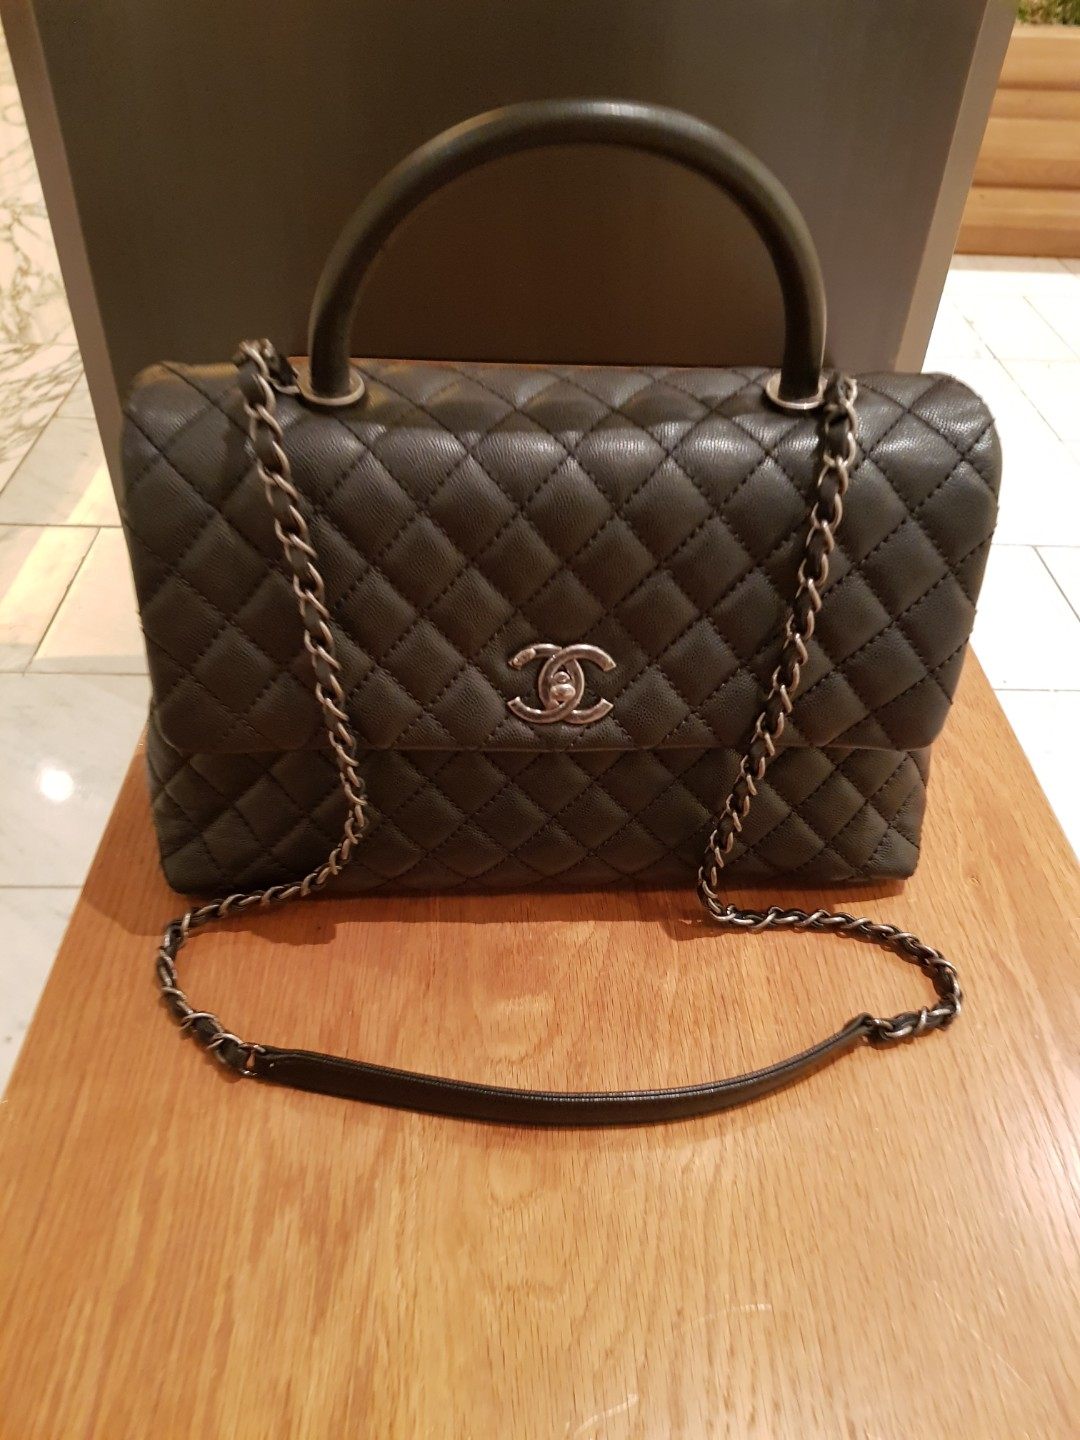 d16dc5a626e624 As good as new Chanel Coco handle bag in black for sale, Women's ...